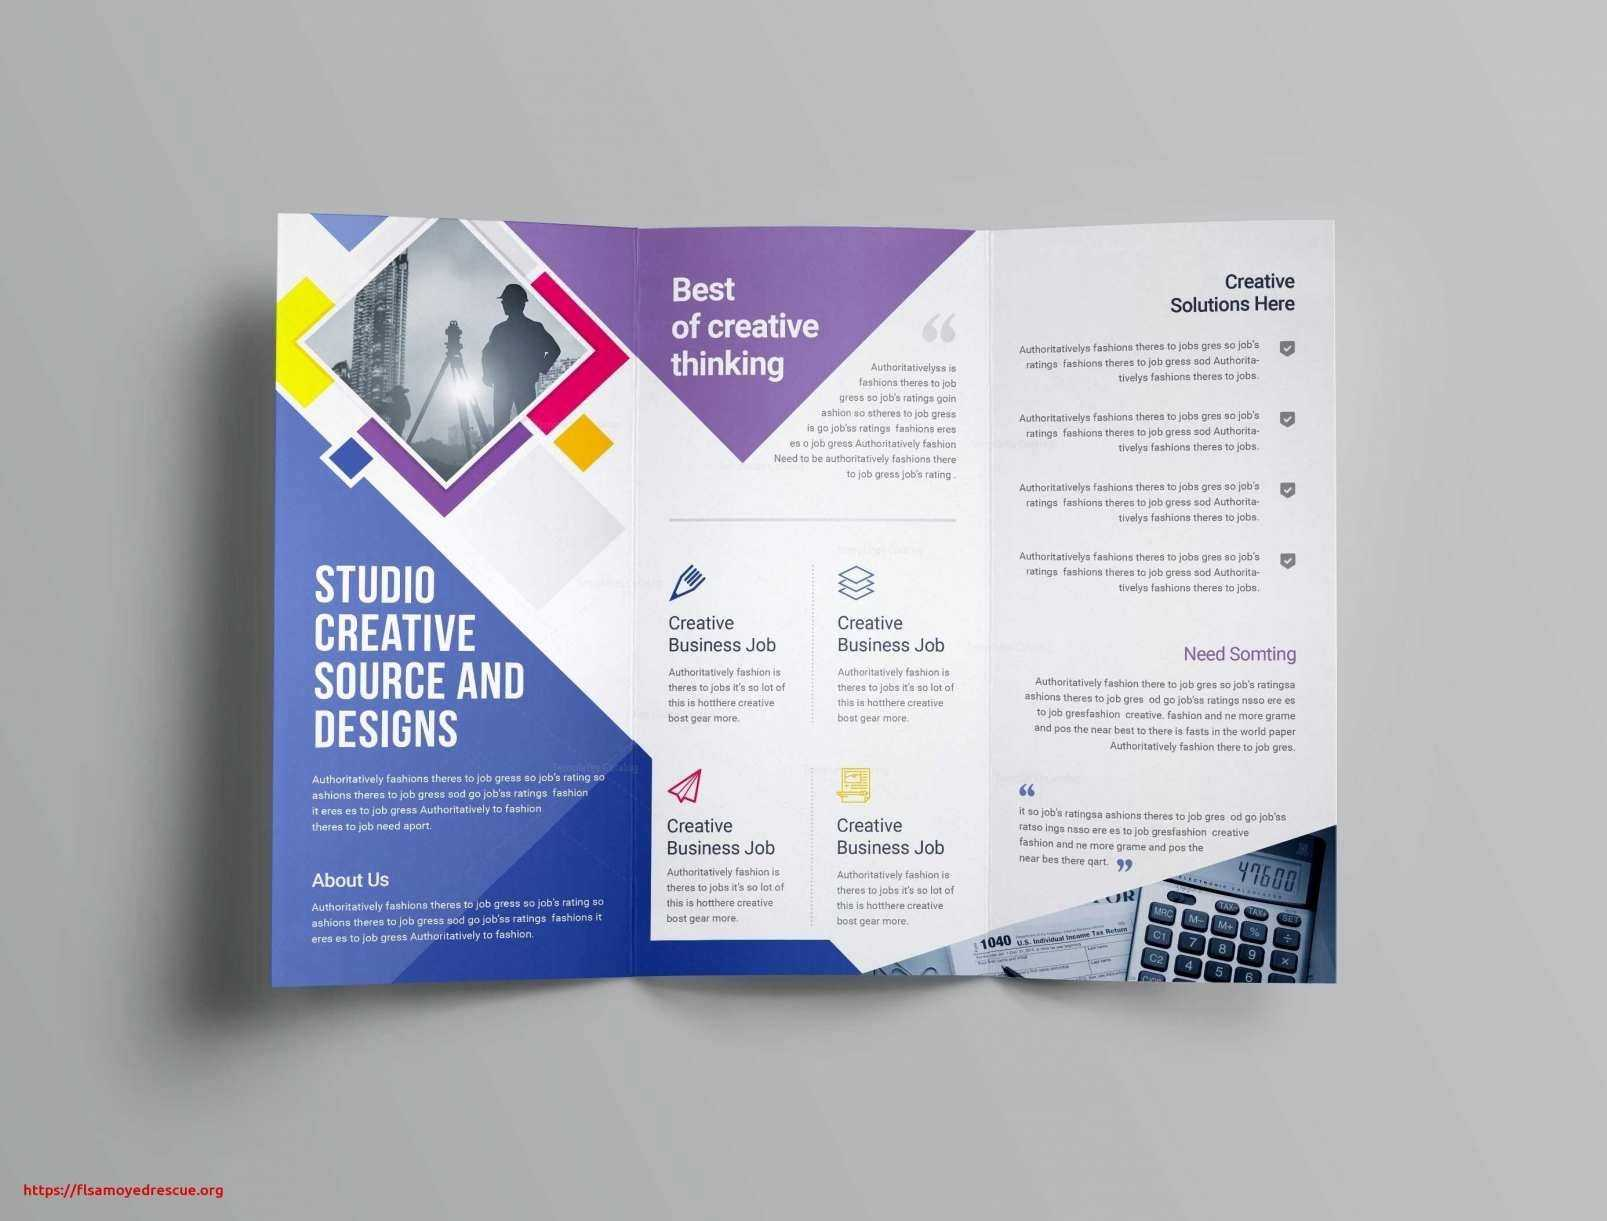 036 Healthcare Brochure Templates Free Download New For Word Intended For Healthcare Brochure Templates Free Download